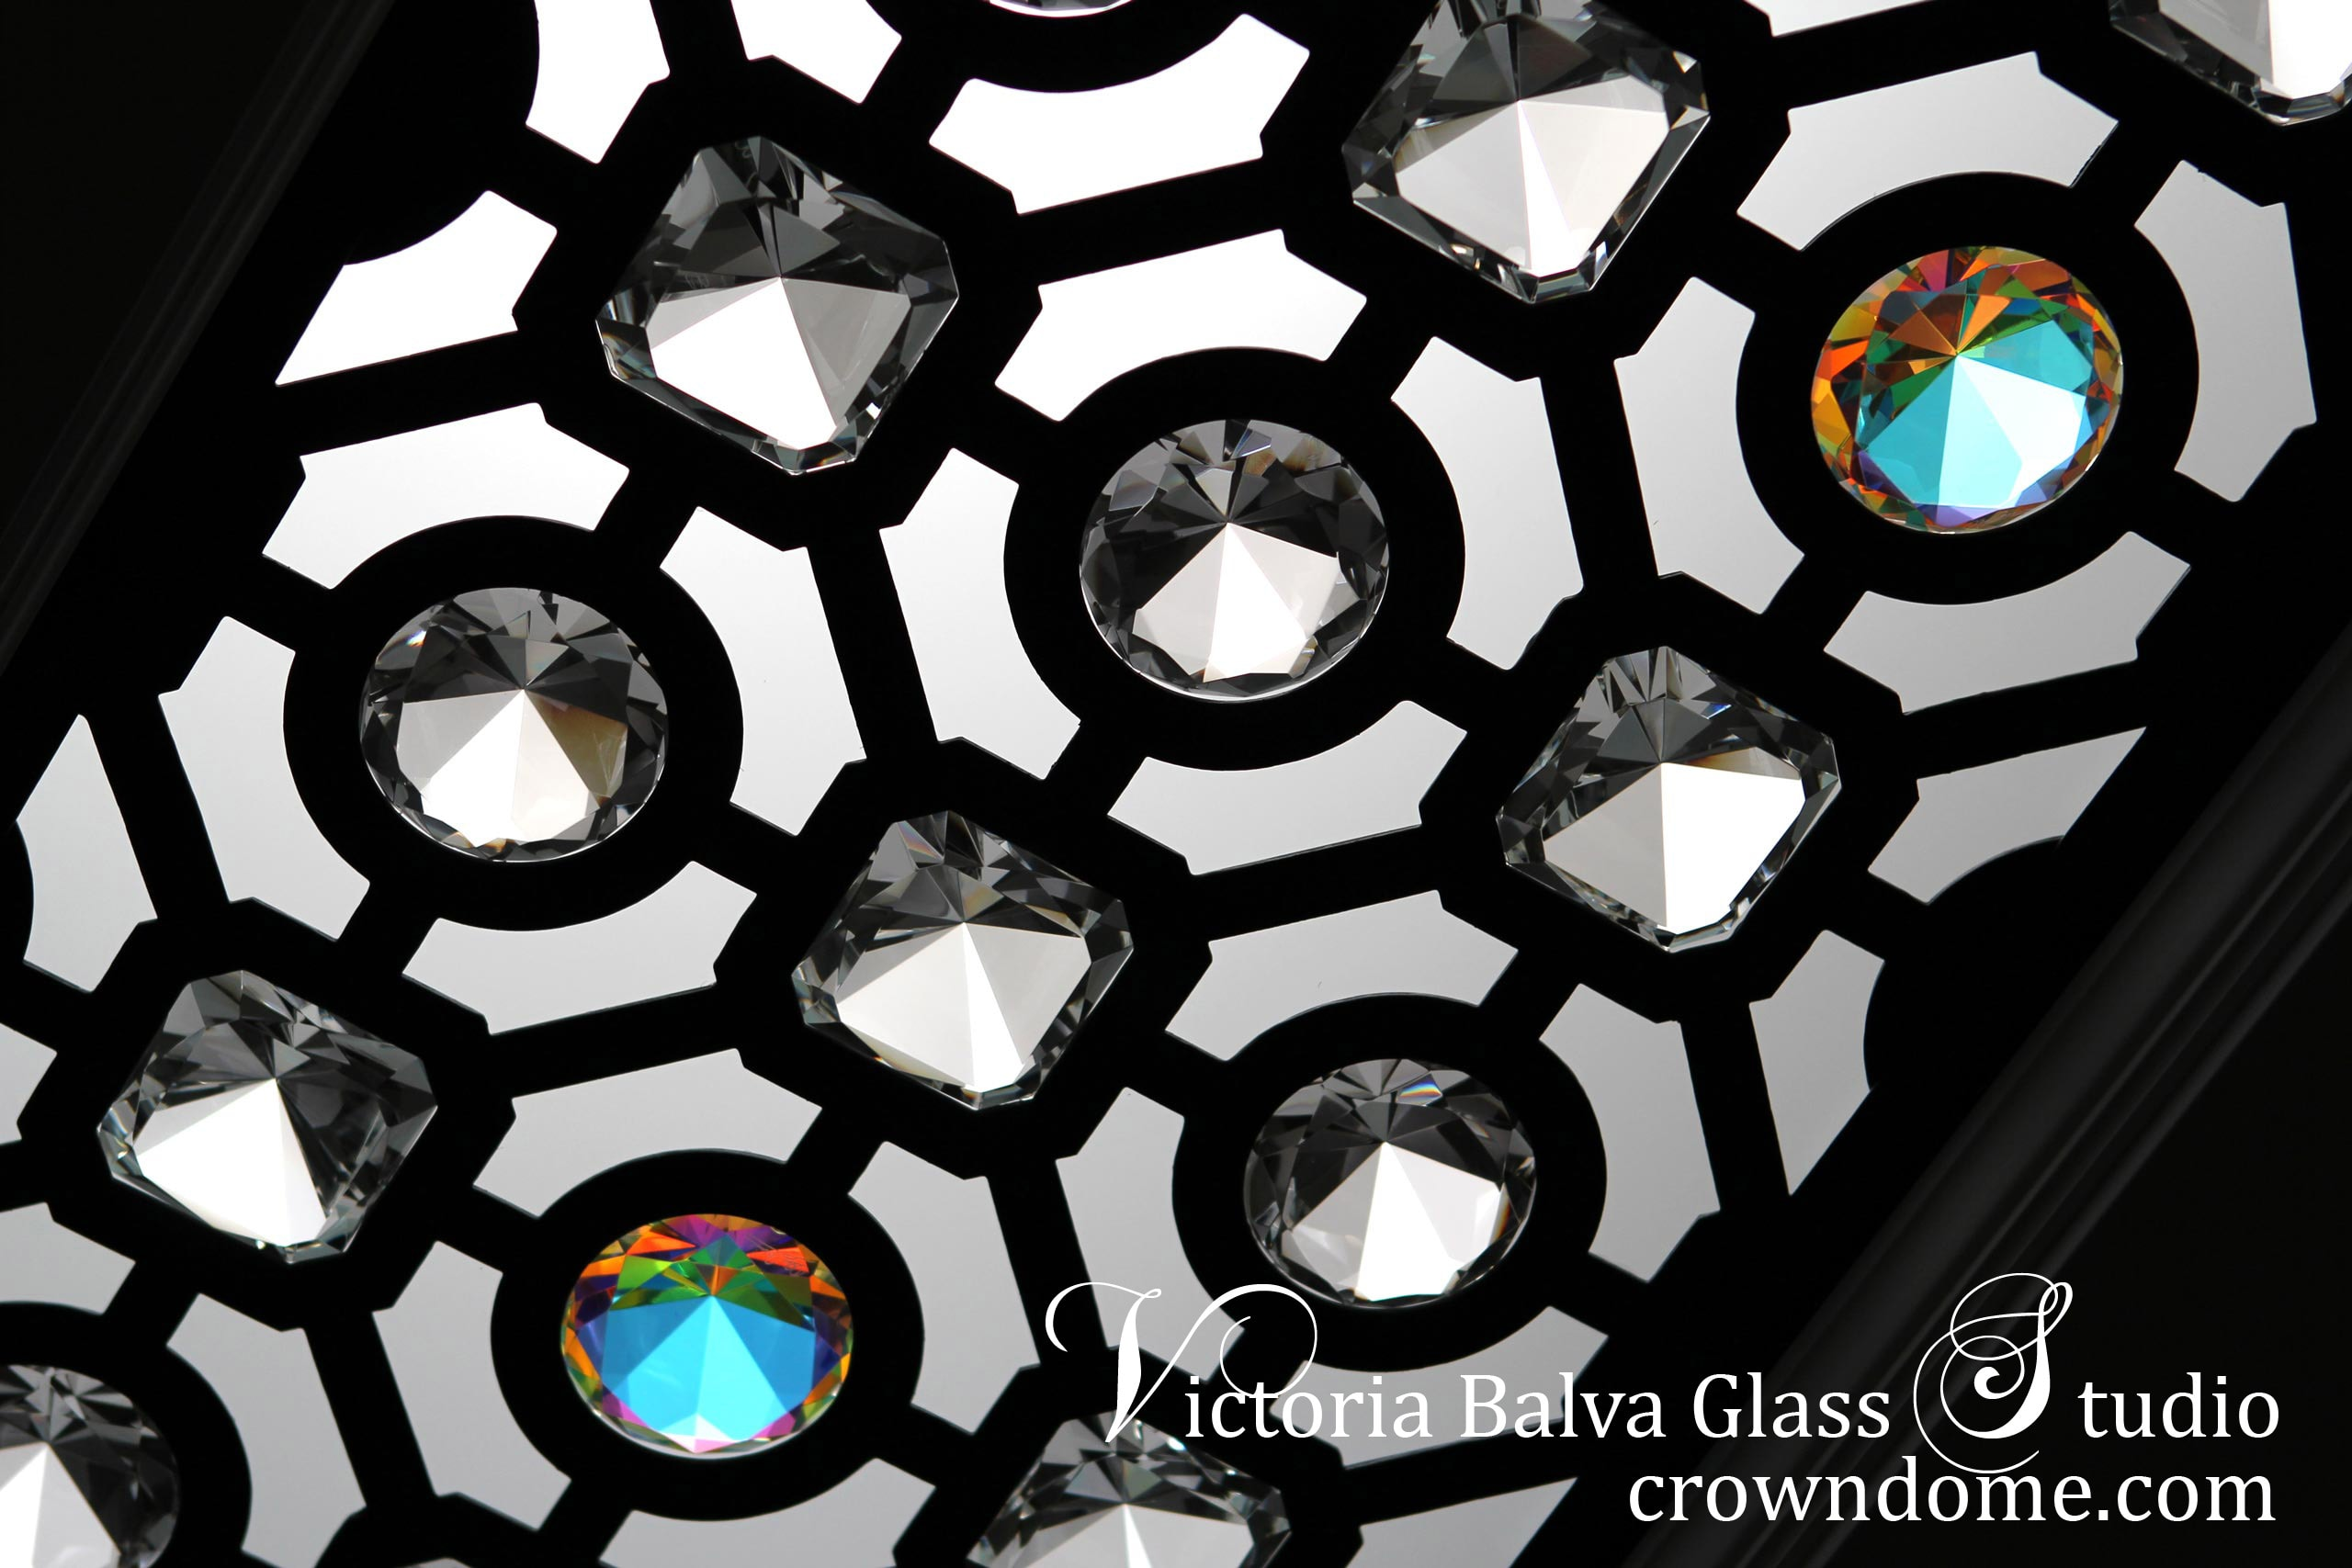 Small ornamental glass skylight ceiling design for a bathroom of a luxury custom-built residence in King City by stained glass artist Victoria Balva. CNC cut ornamental metal, laminated glass, and extra large crystal clear and iridized jewels